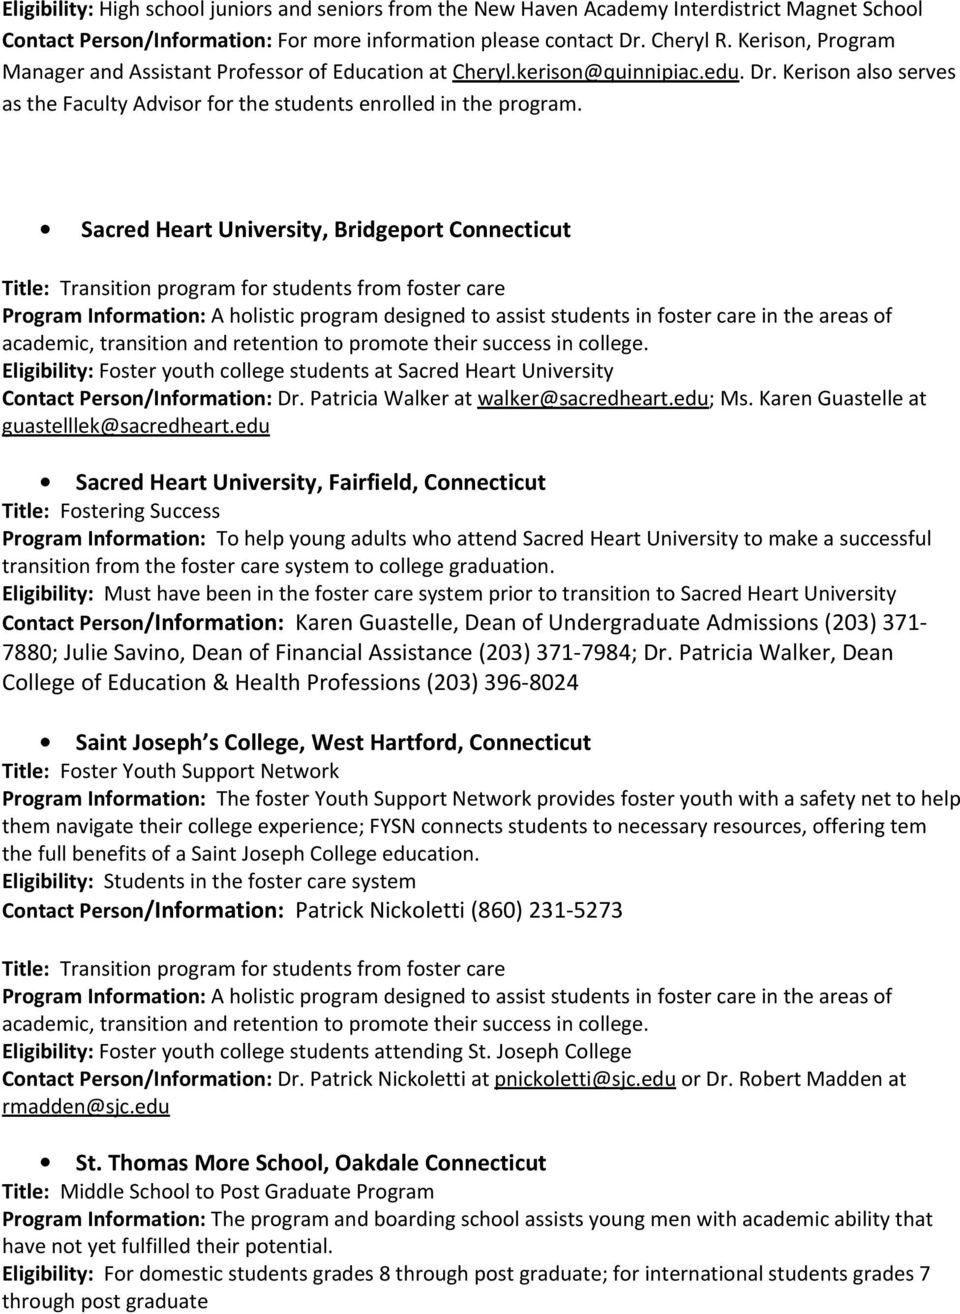 Sacred Heart University, Bridgeport Connecticut Title: Transition program for students from foster care Program Information: A holistic program designed to assist students in foster care in the areas